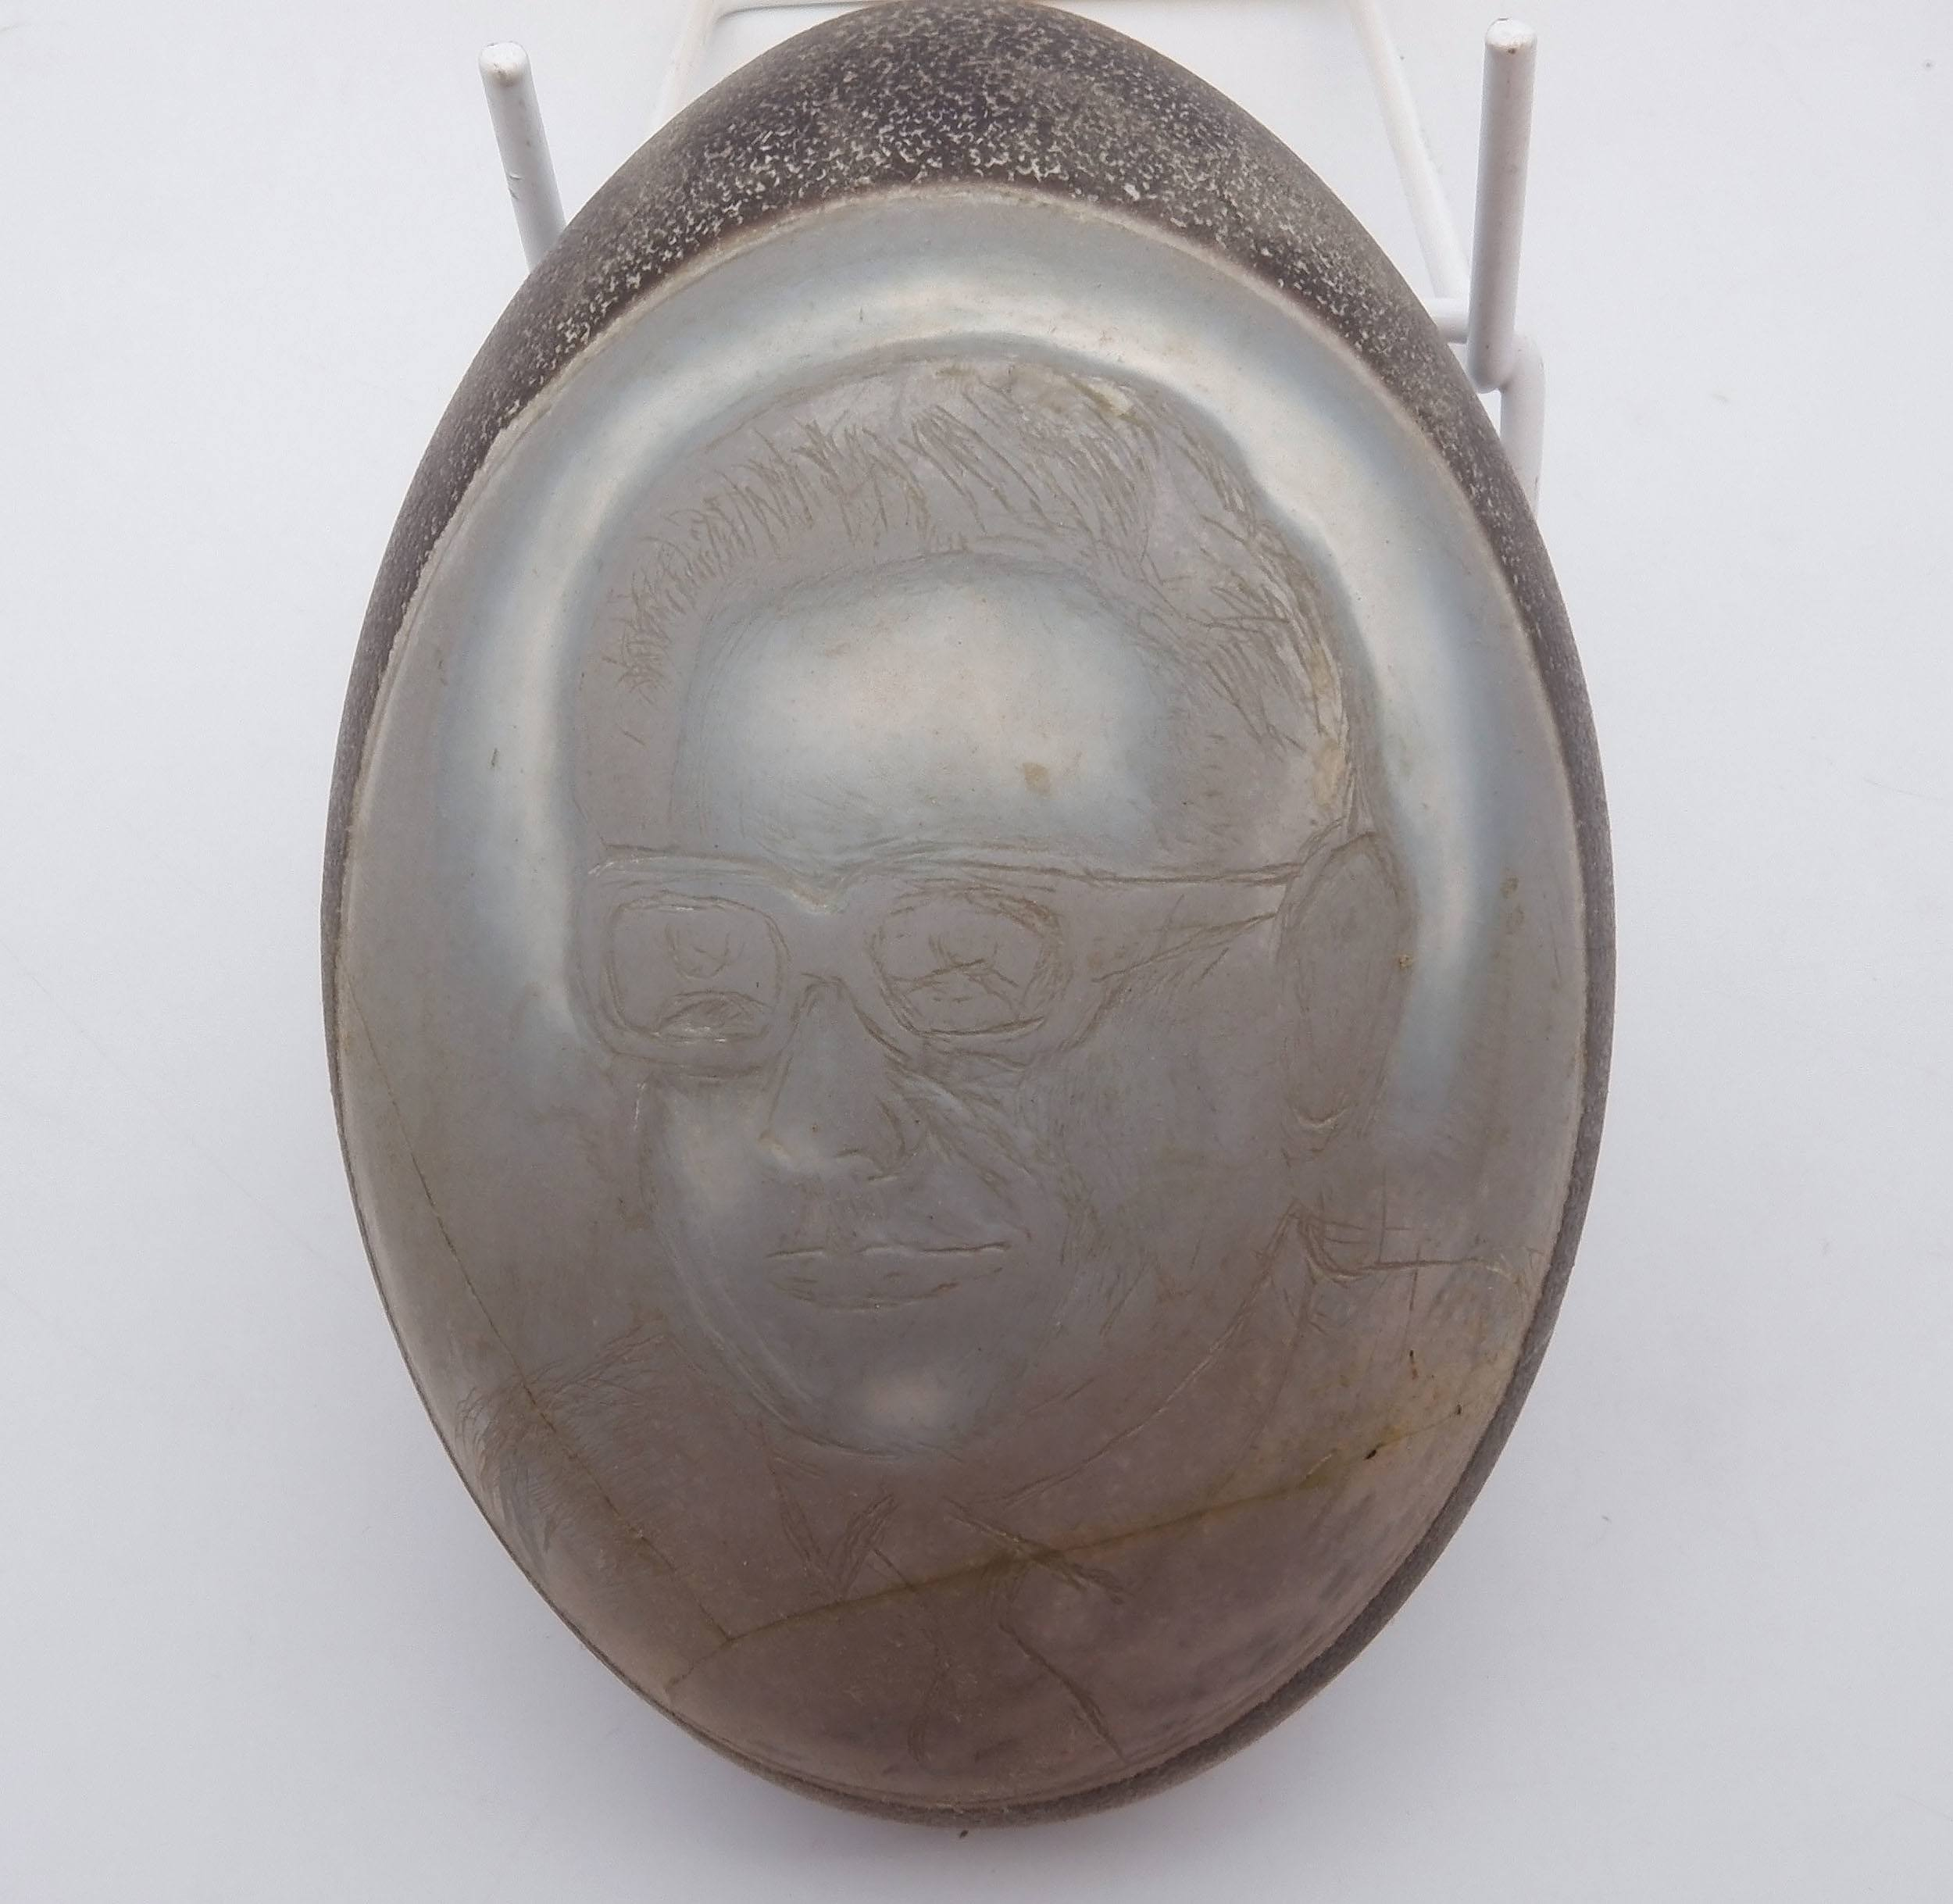 'Aboriginal Carved Emu Egg Portrait of Barrie Dexter by Bill Bird'